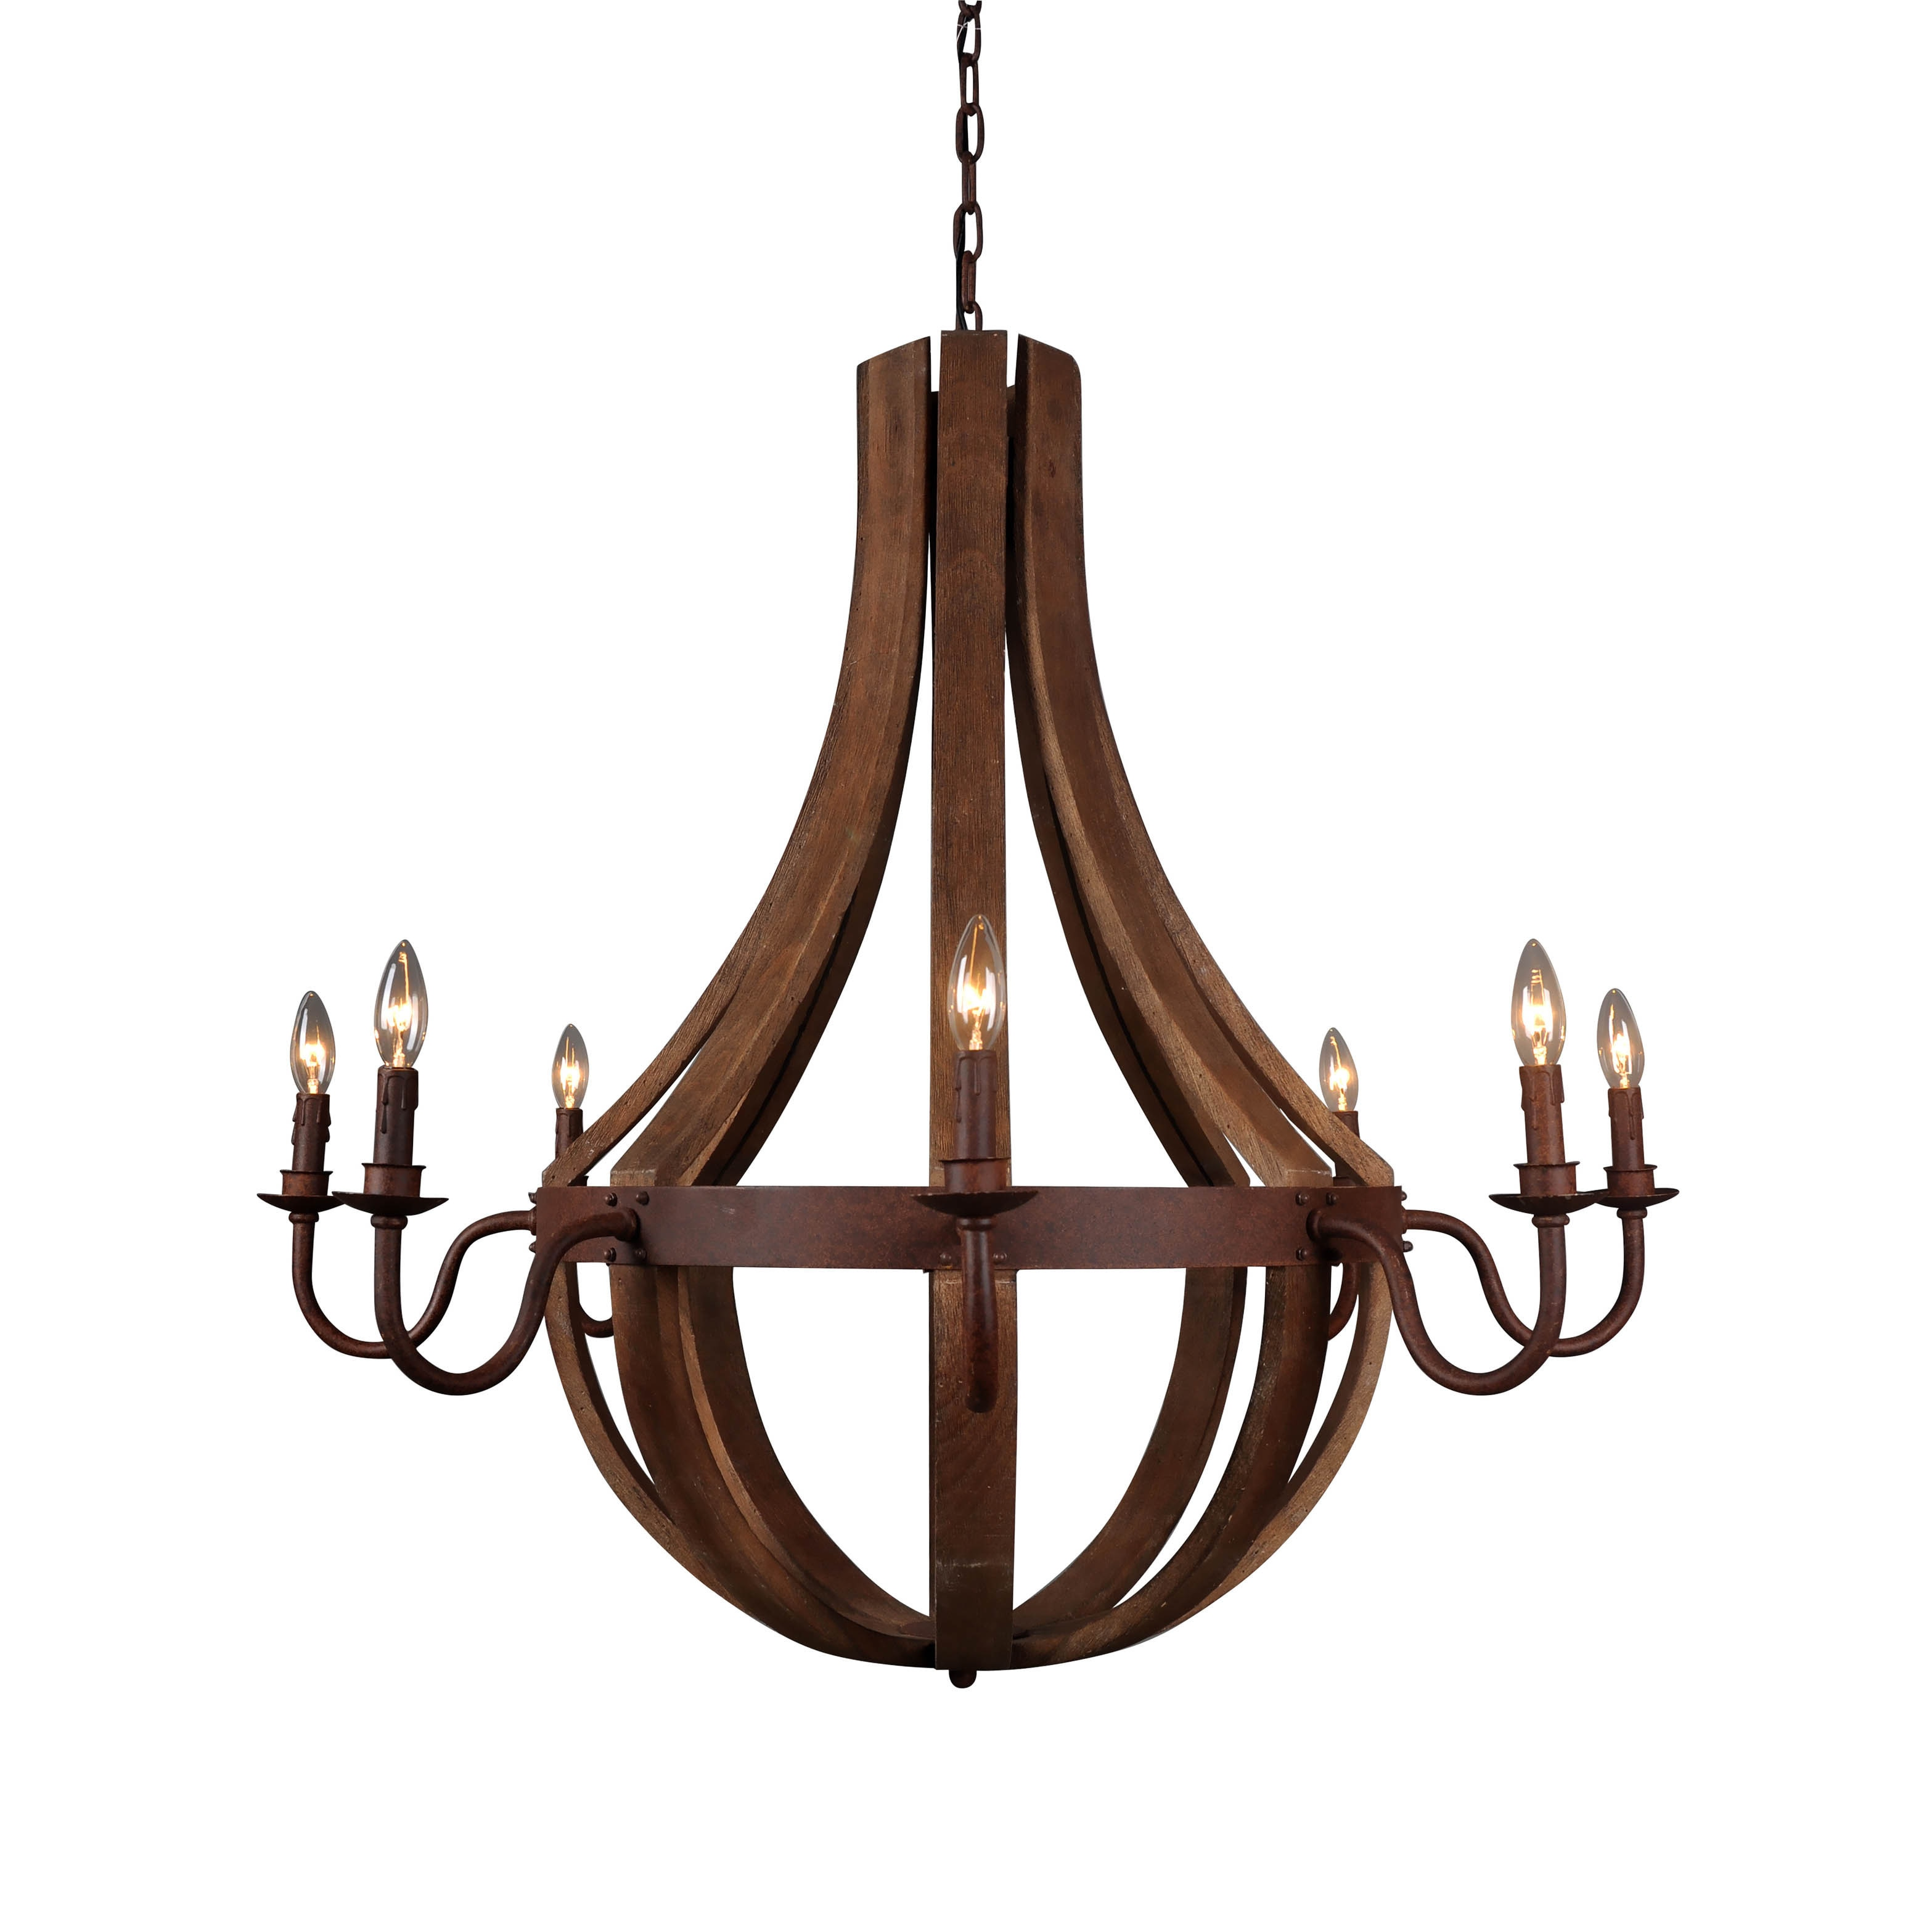 Shop aurelle home large reclaimed wood and cast iron chandelier on sale free shipping today overstock com 10576178